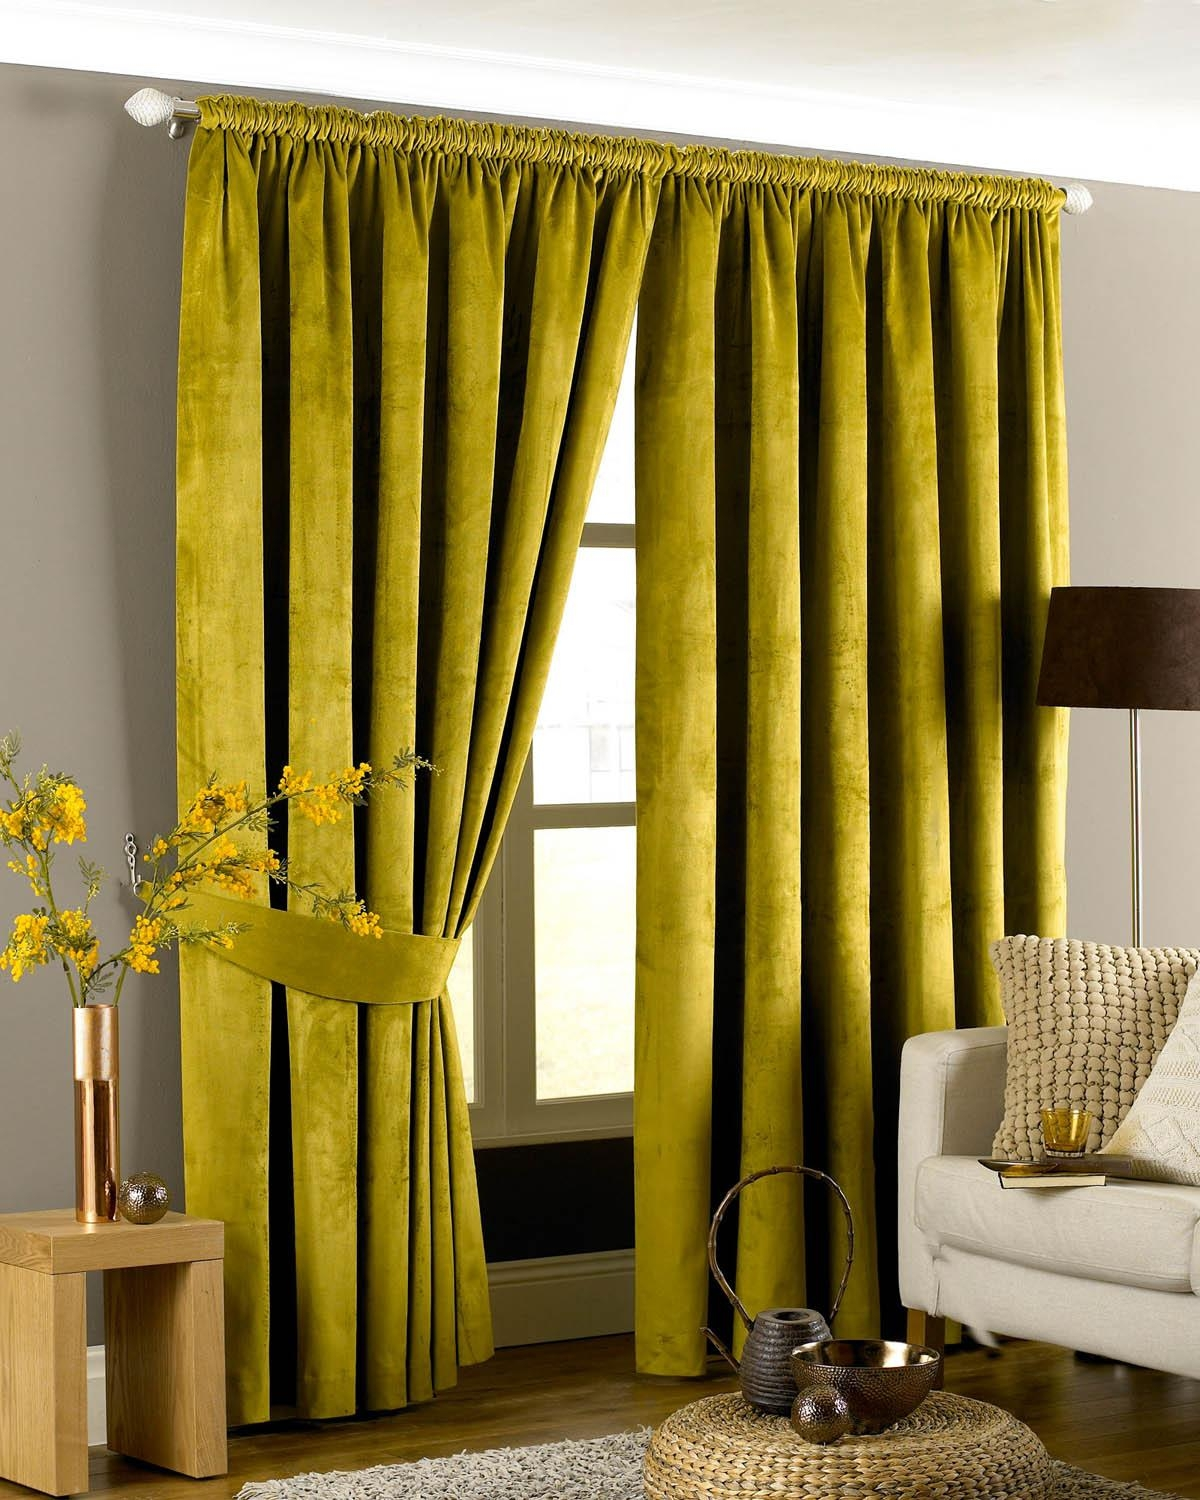 Green Velvet Curtains Ready Made Best Curtains 2017 Within Yellow Velvet Curtains (Image 12 of 15)